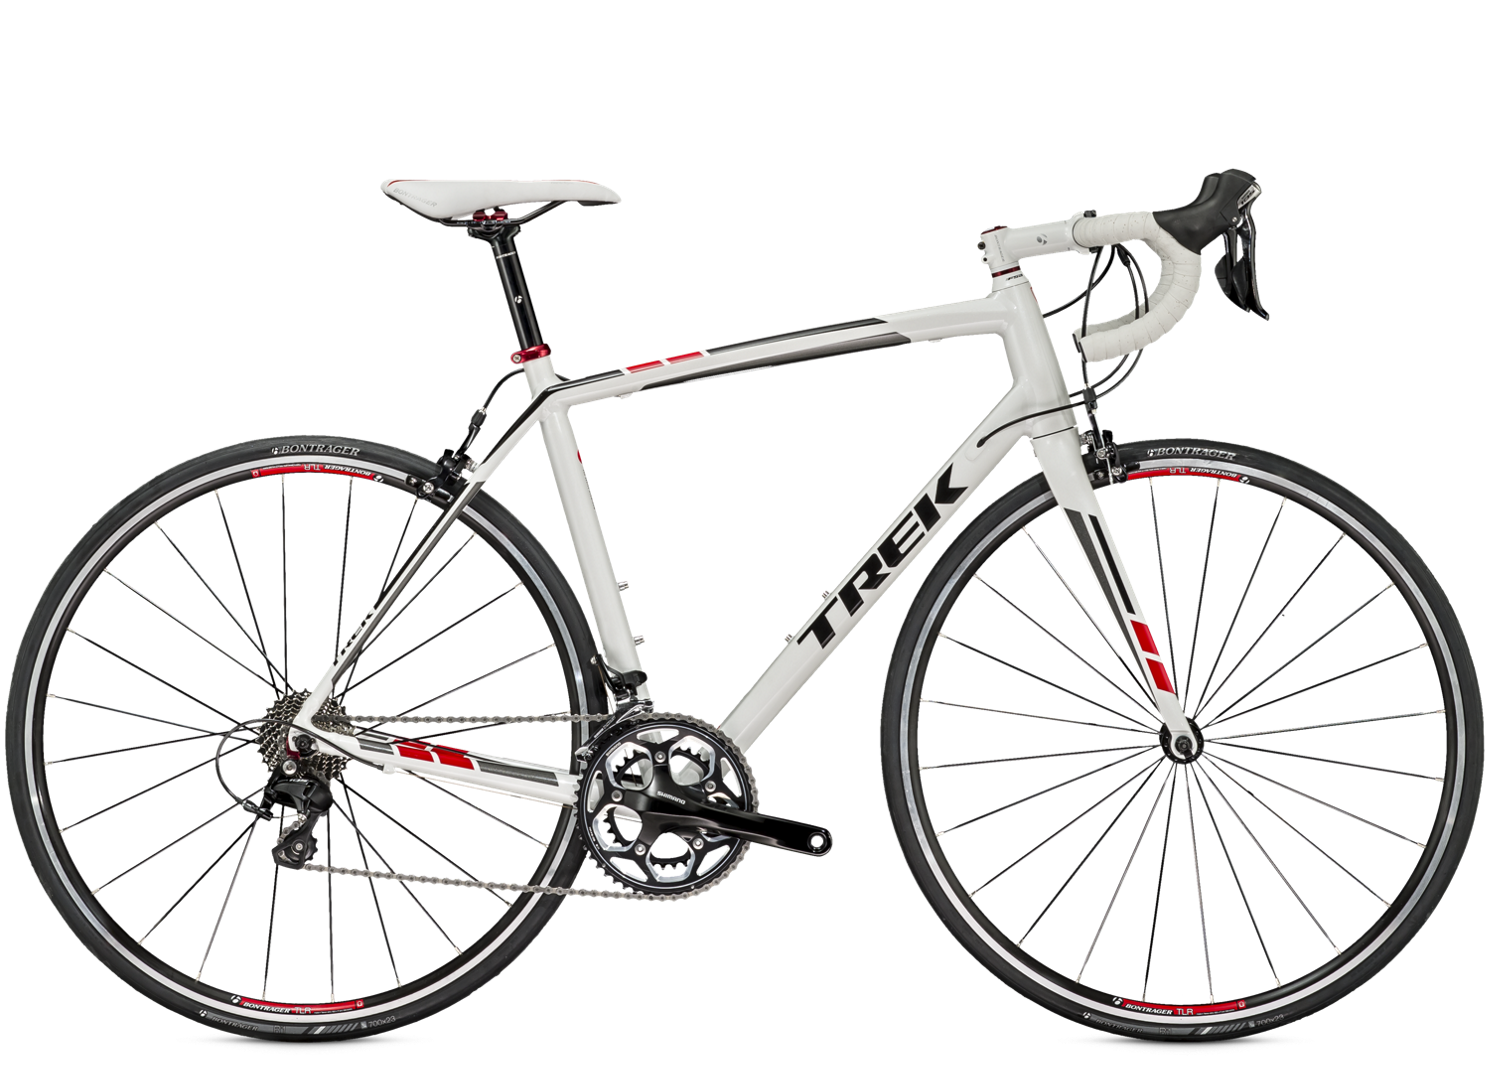 2015 Madone 2 1 H2 Compact - Bike Archive - Trek Bicycle